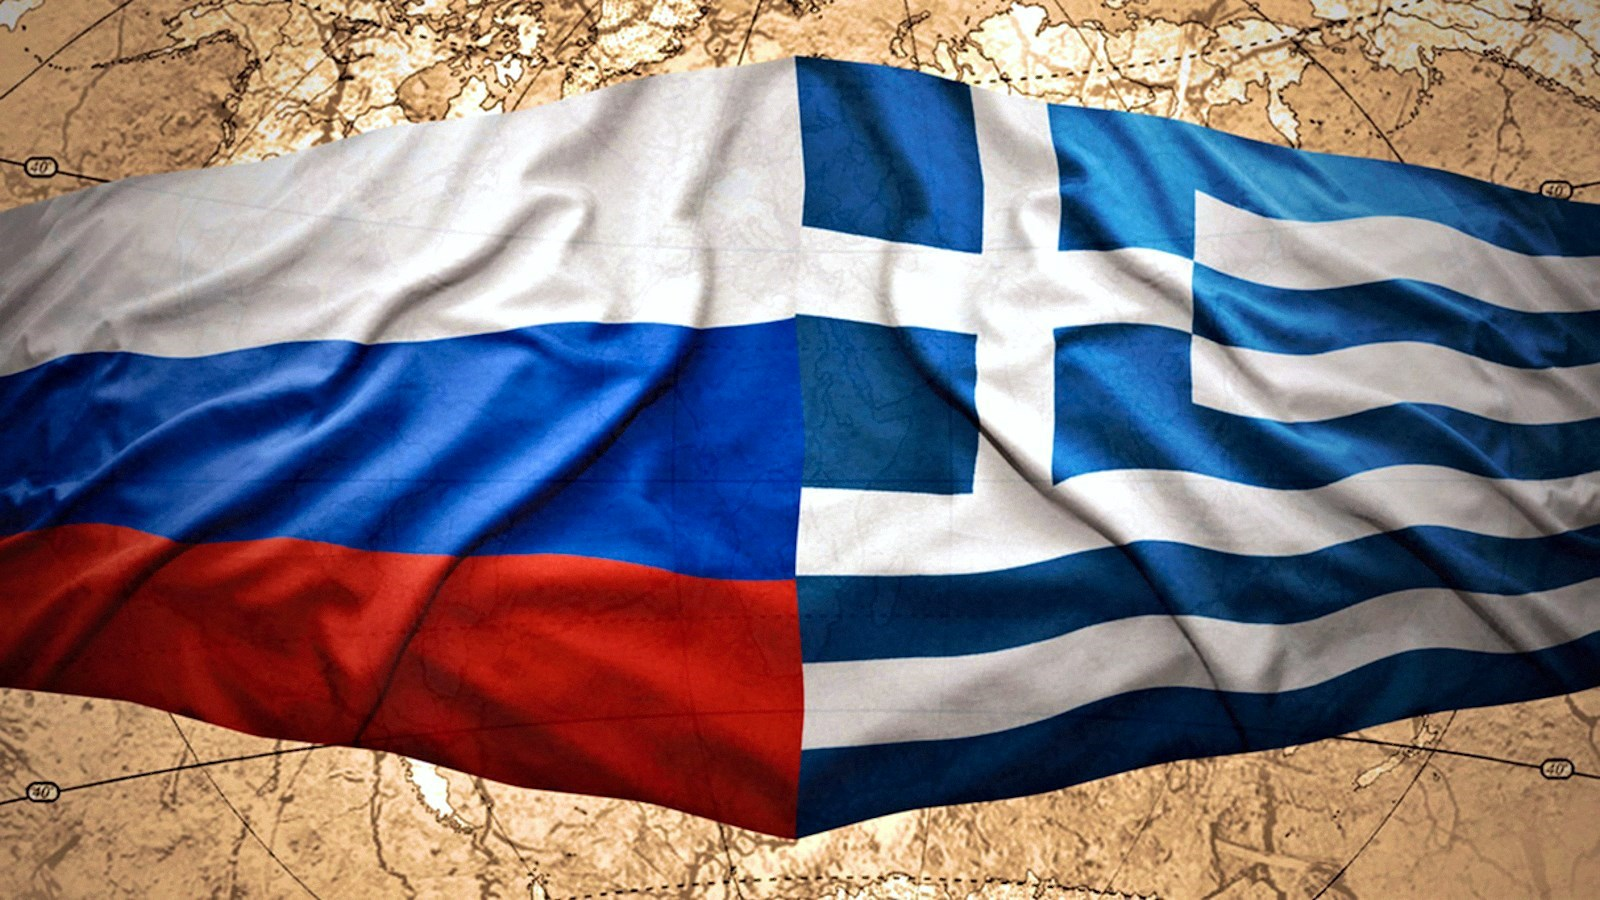 00 russia-greece. 25.04.15